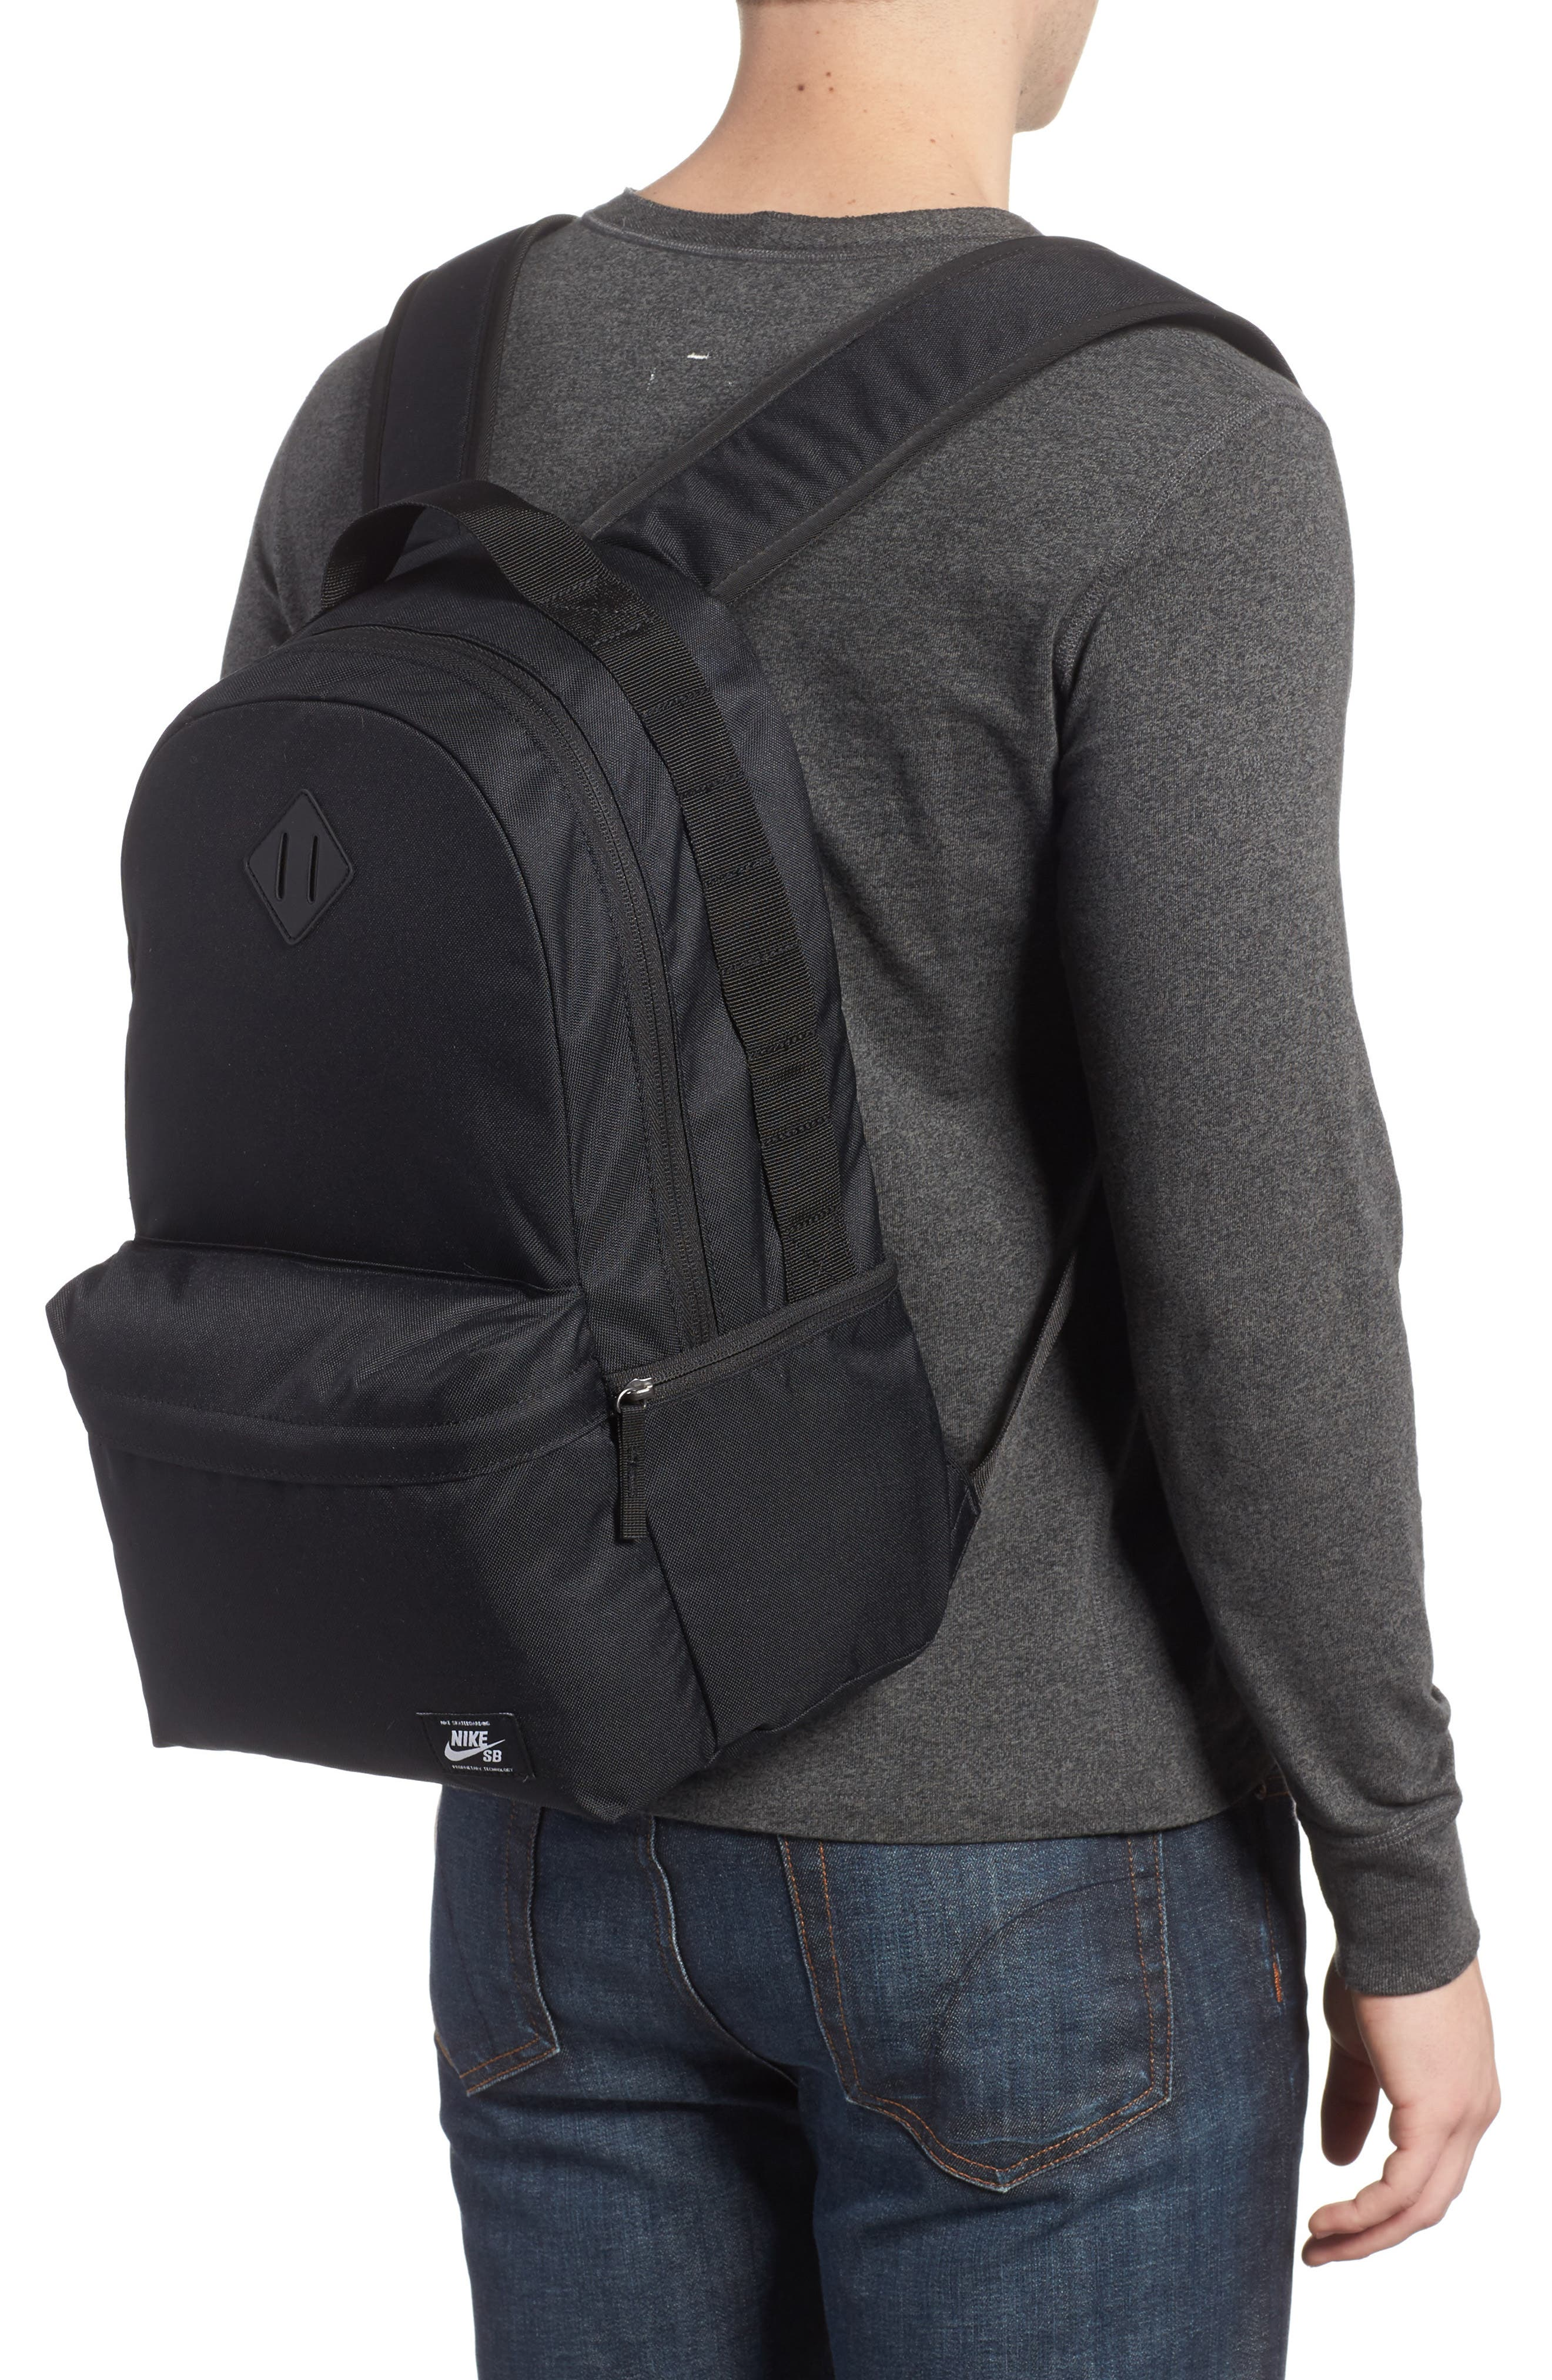 Icon Backpack,                             Alternate thumbnail 2, color,                             010